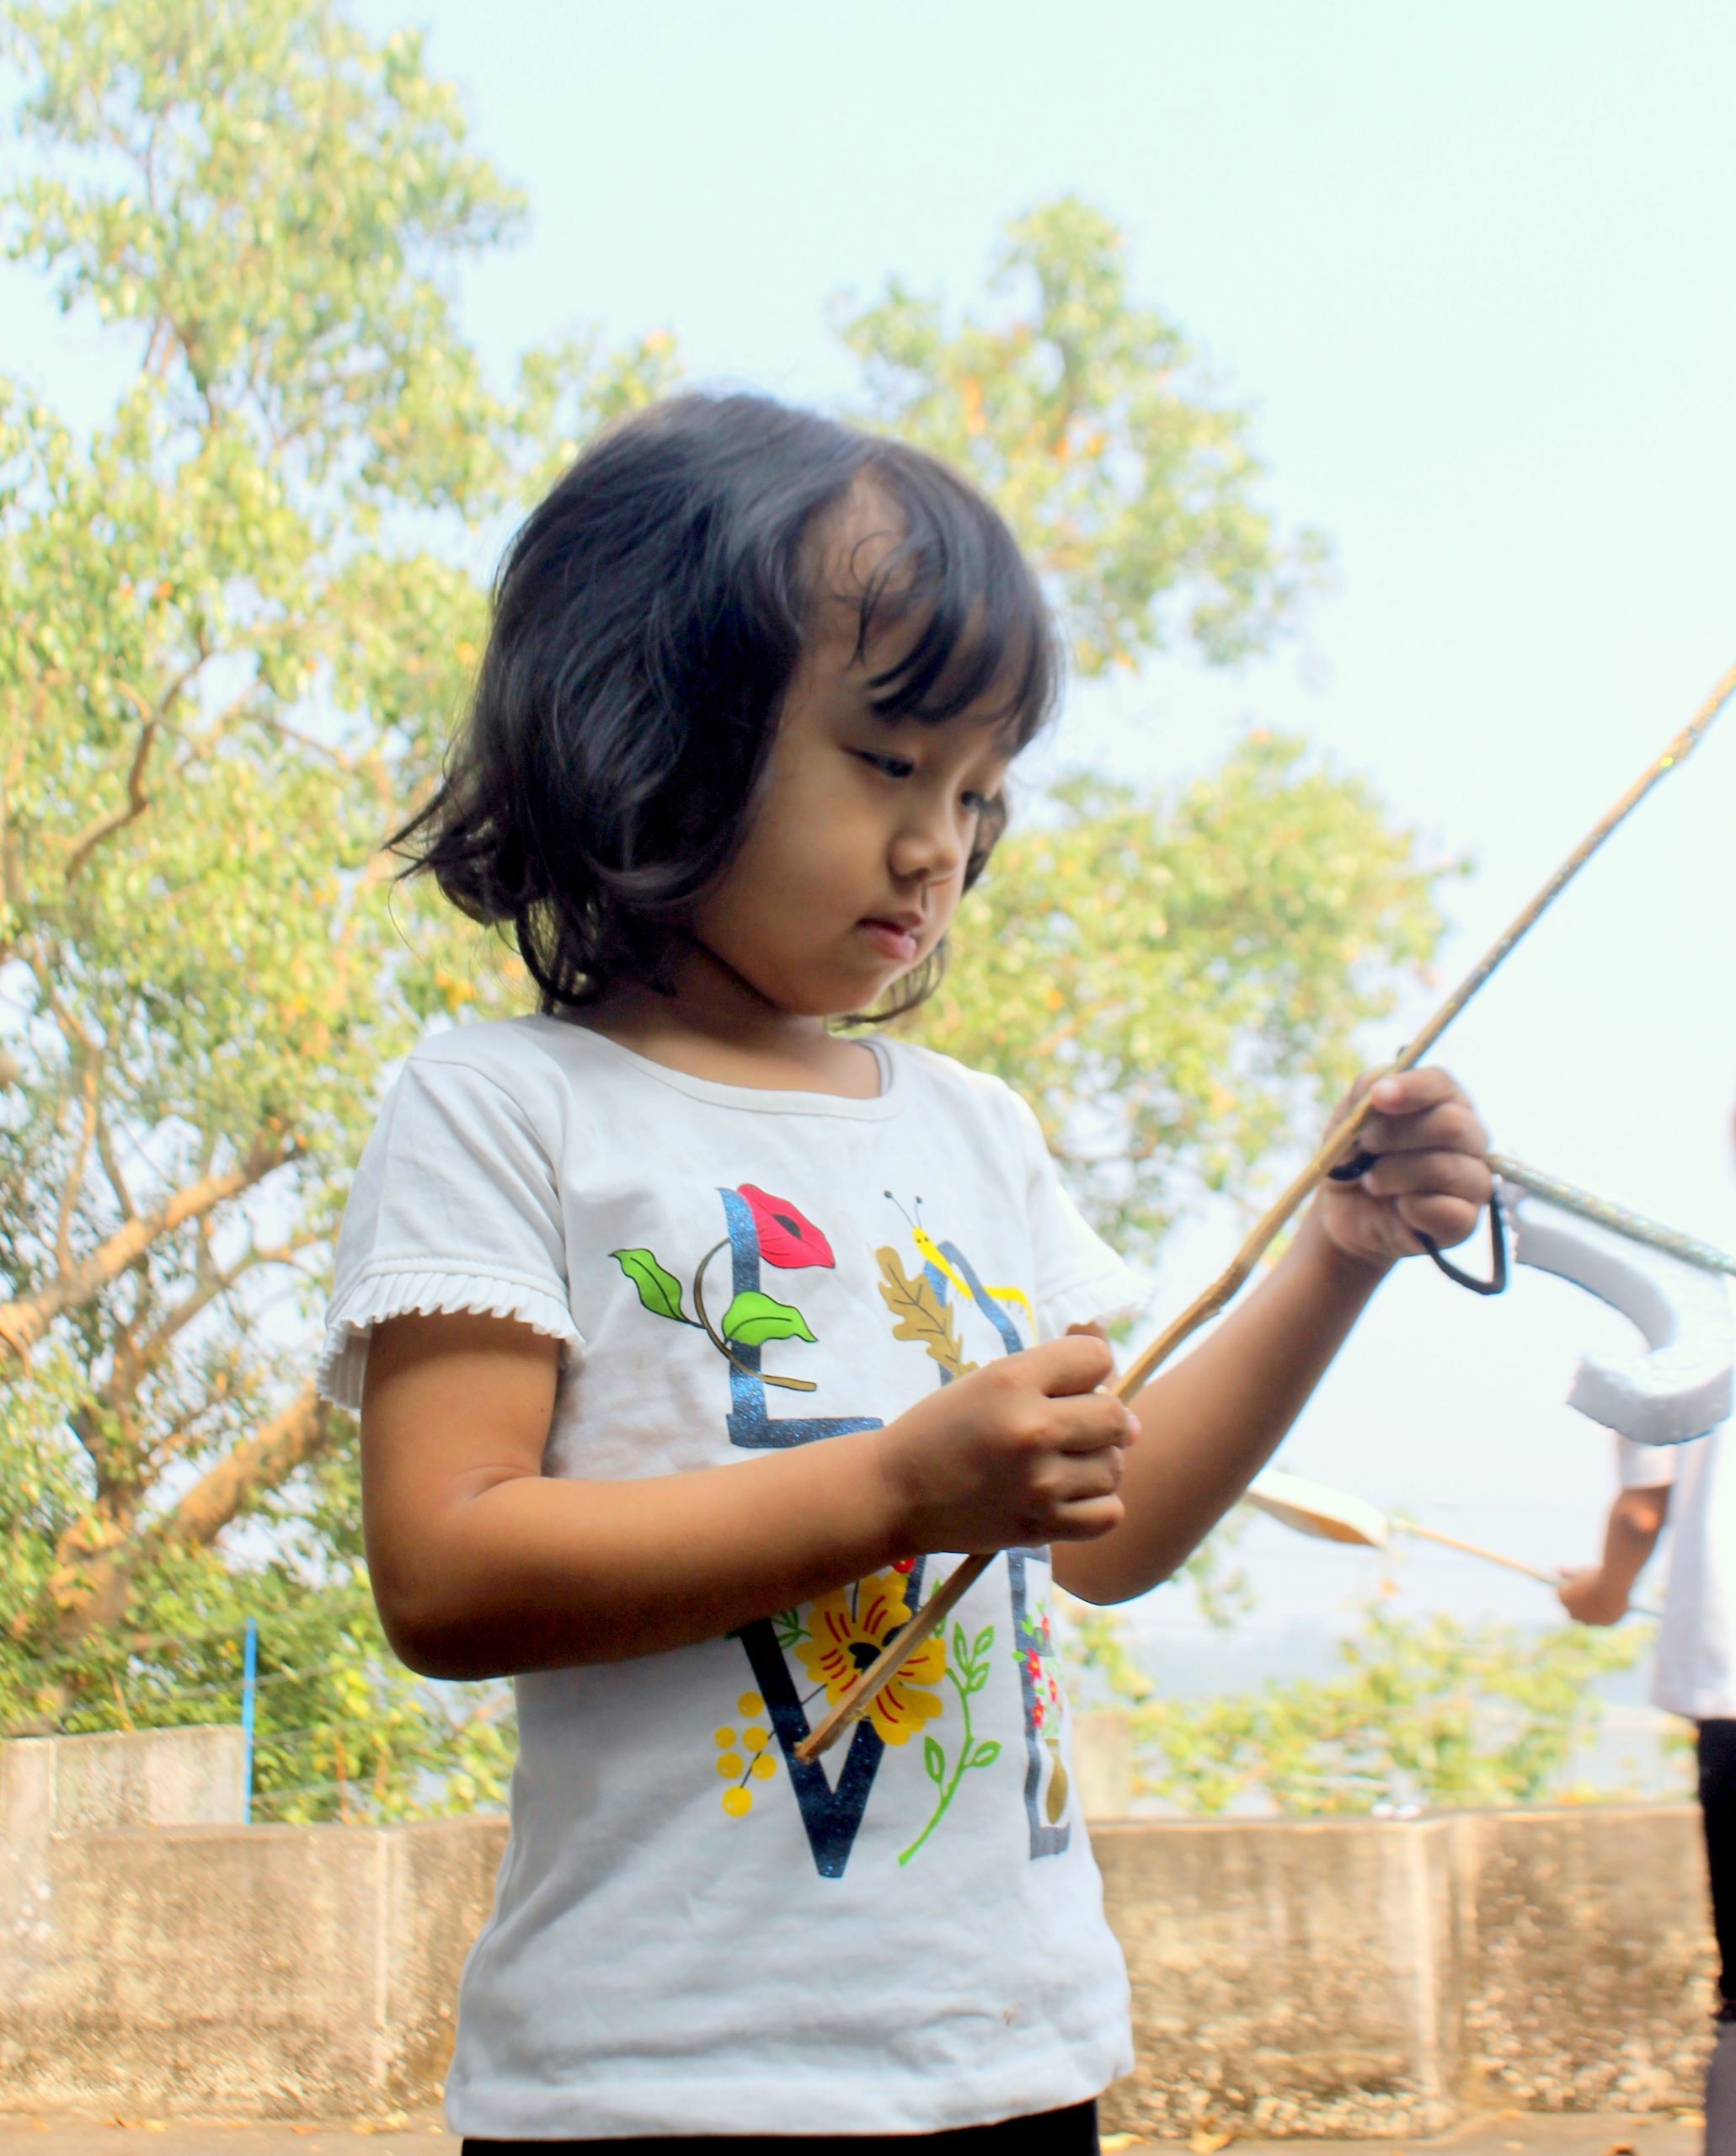 Girl with wood stick